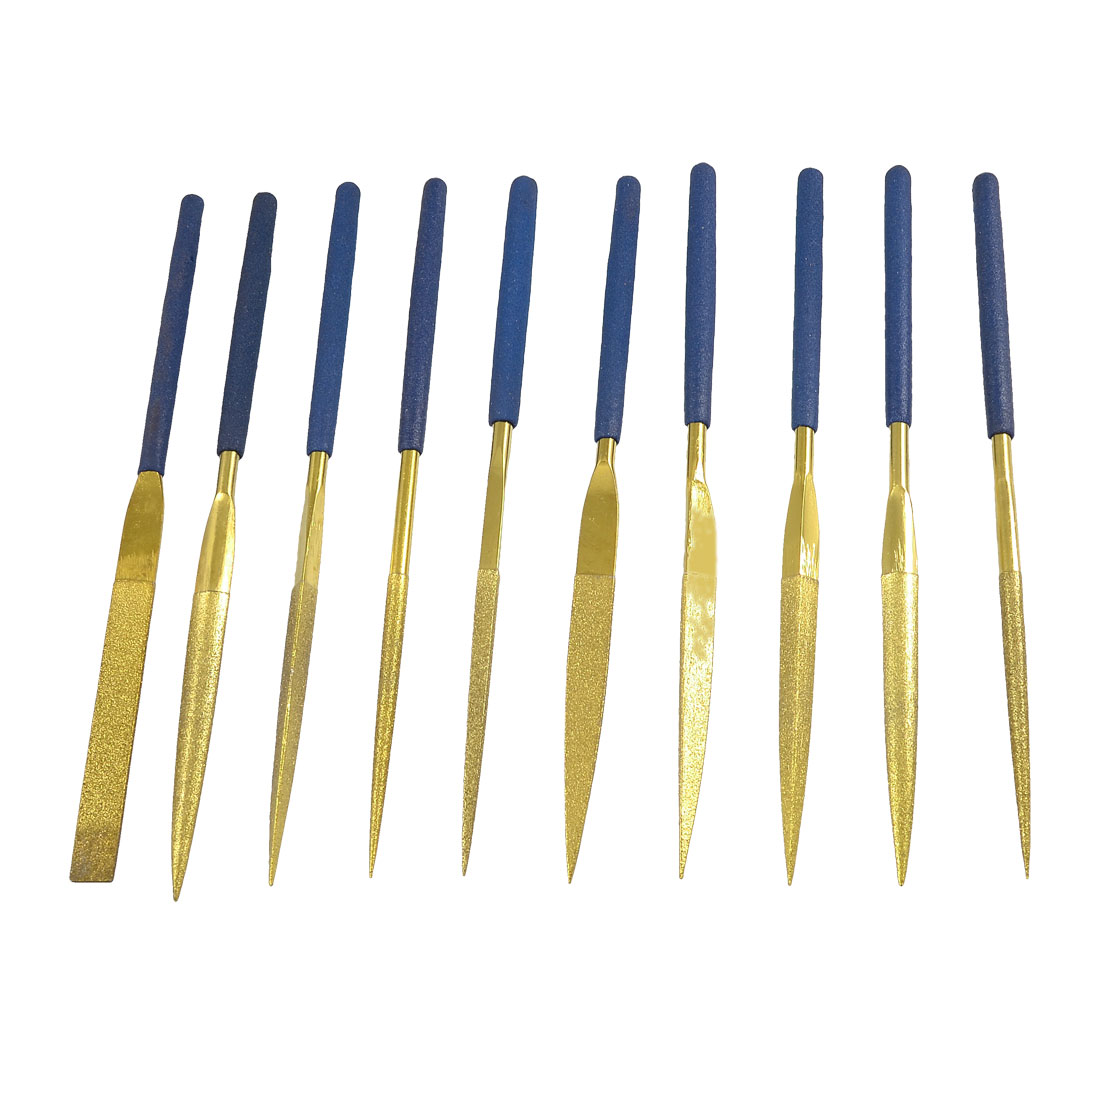 10 x 5mm Shank 180mm Long Blue Nonslip Grip Triangle Diamond File Set